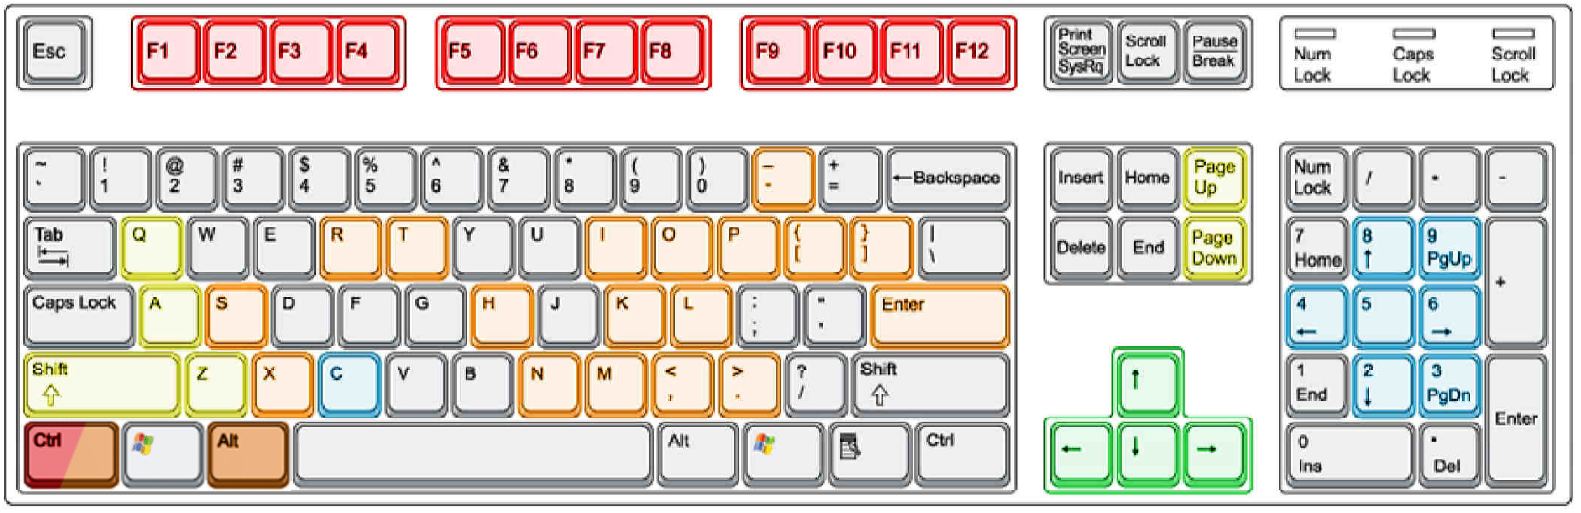 Vehicle keyboard layout